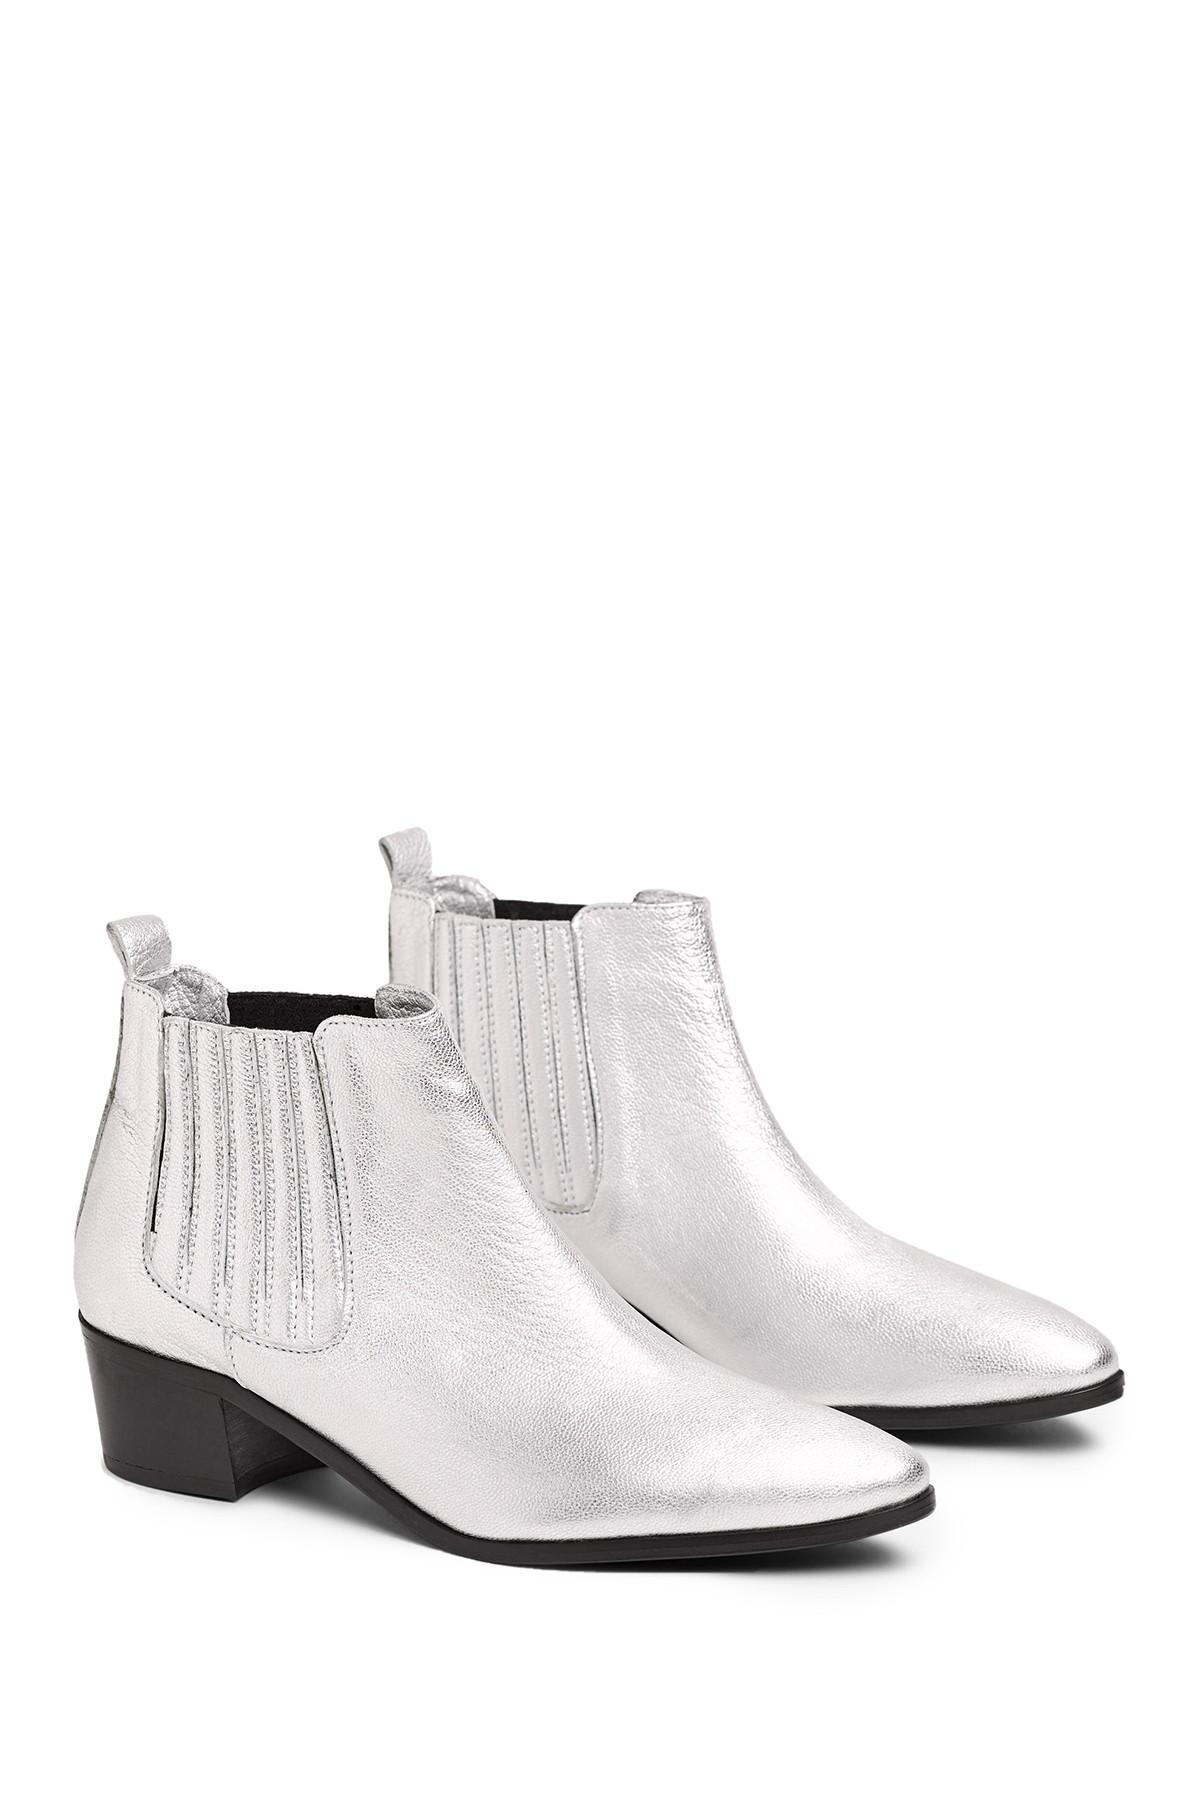 Modern Vice Handler Leather Bootie RoRoLi